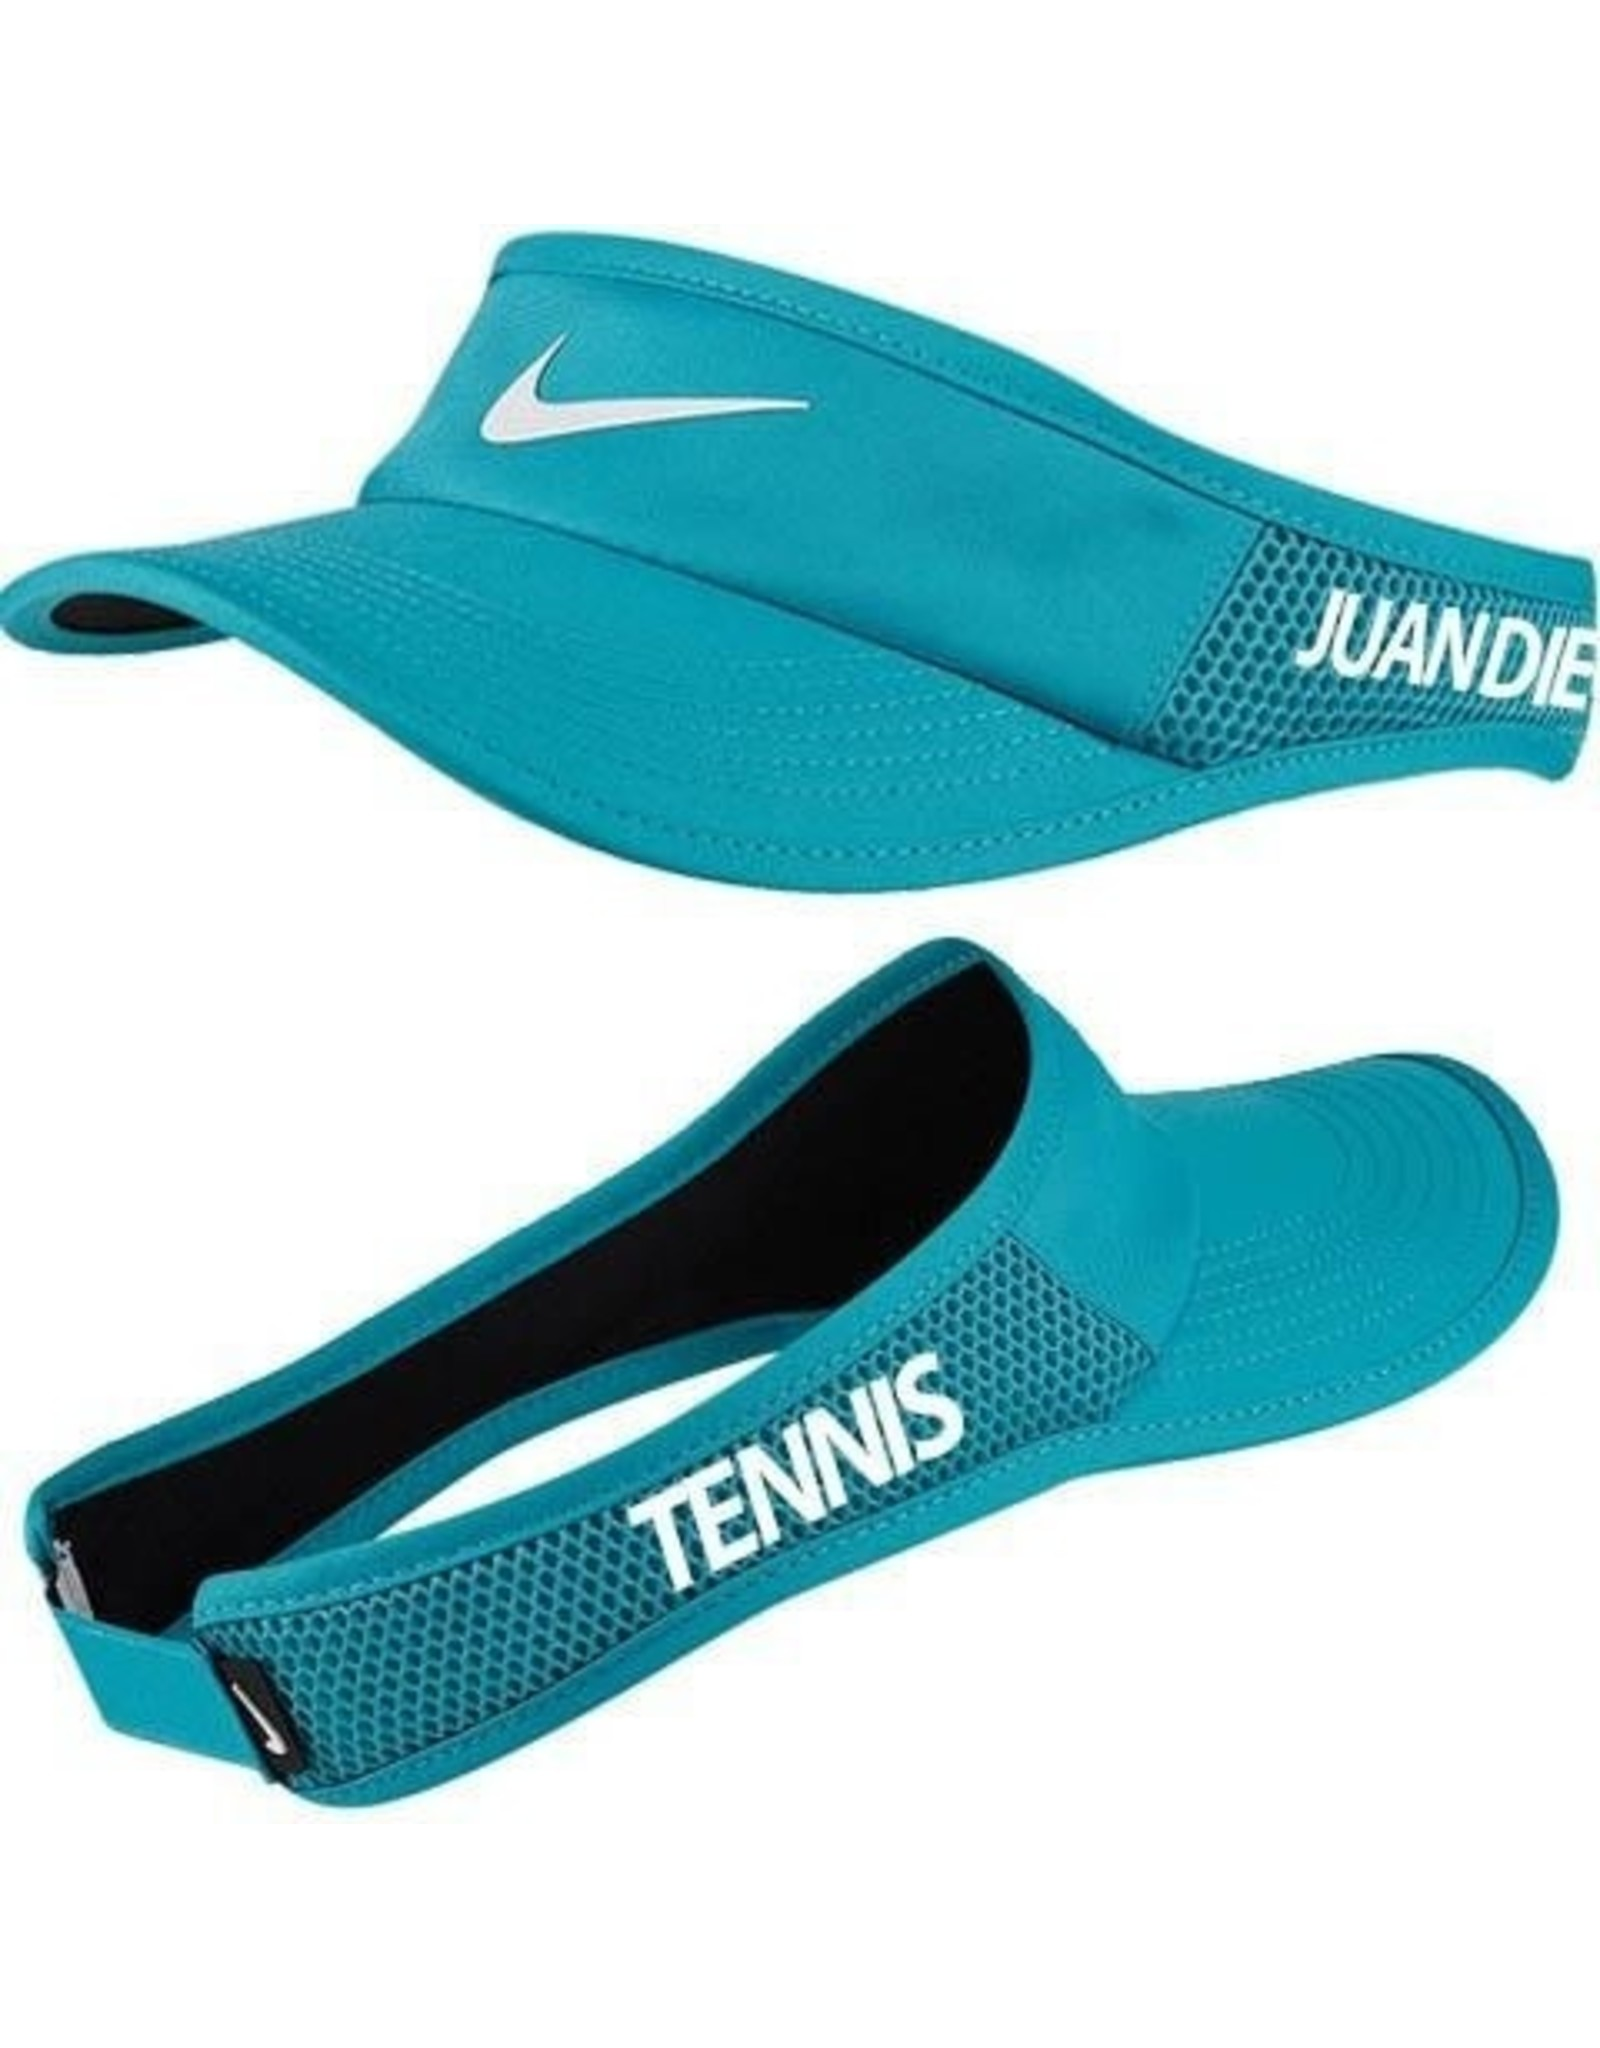 NON-UNIFORM Visor - Girls Tennis Nike Women's Aerobill Feather Light Visor